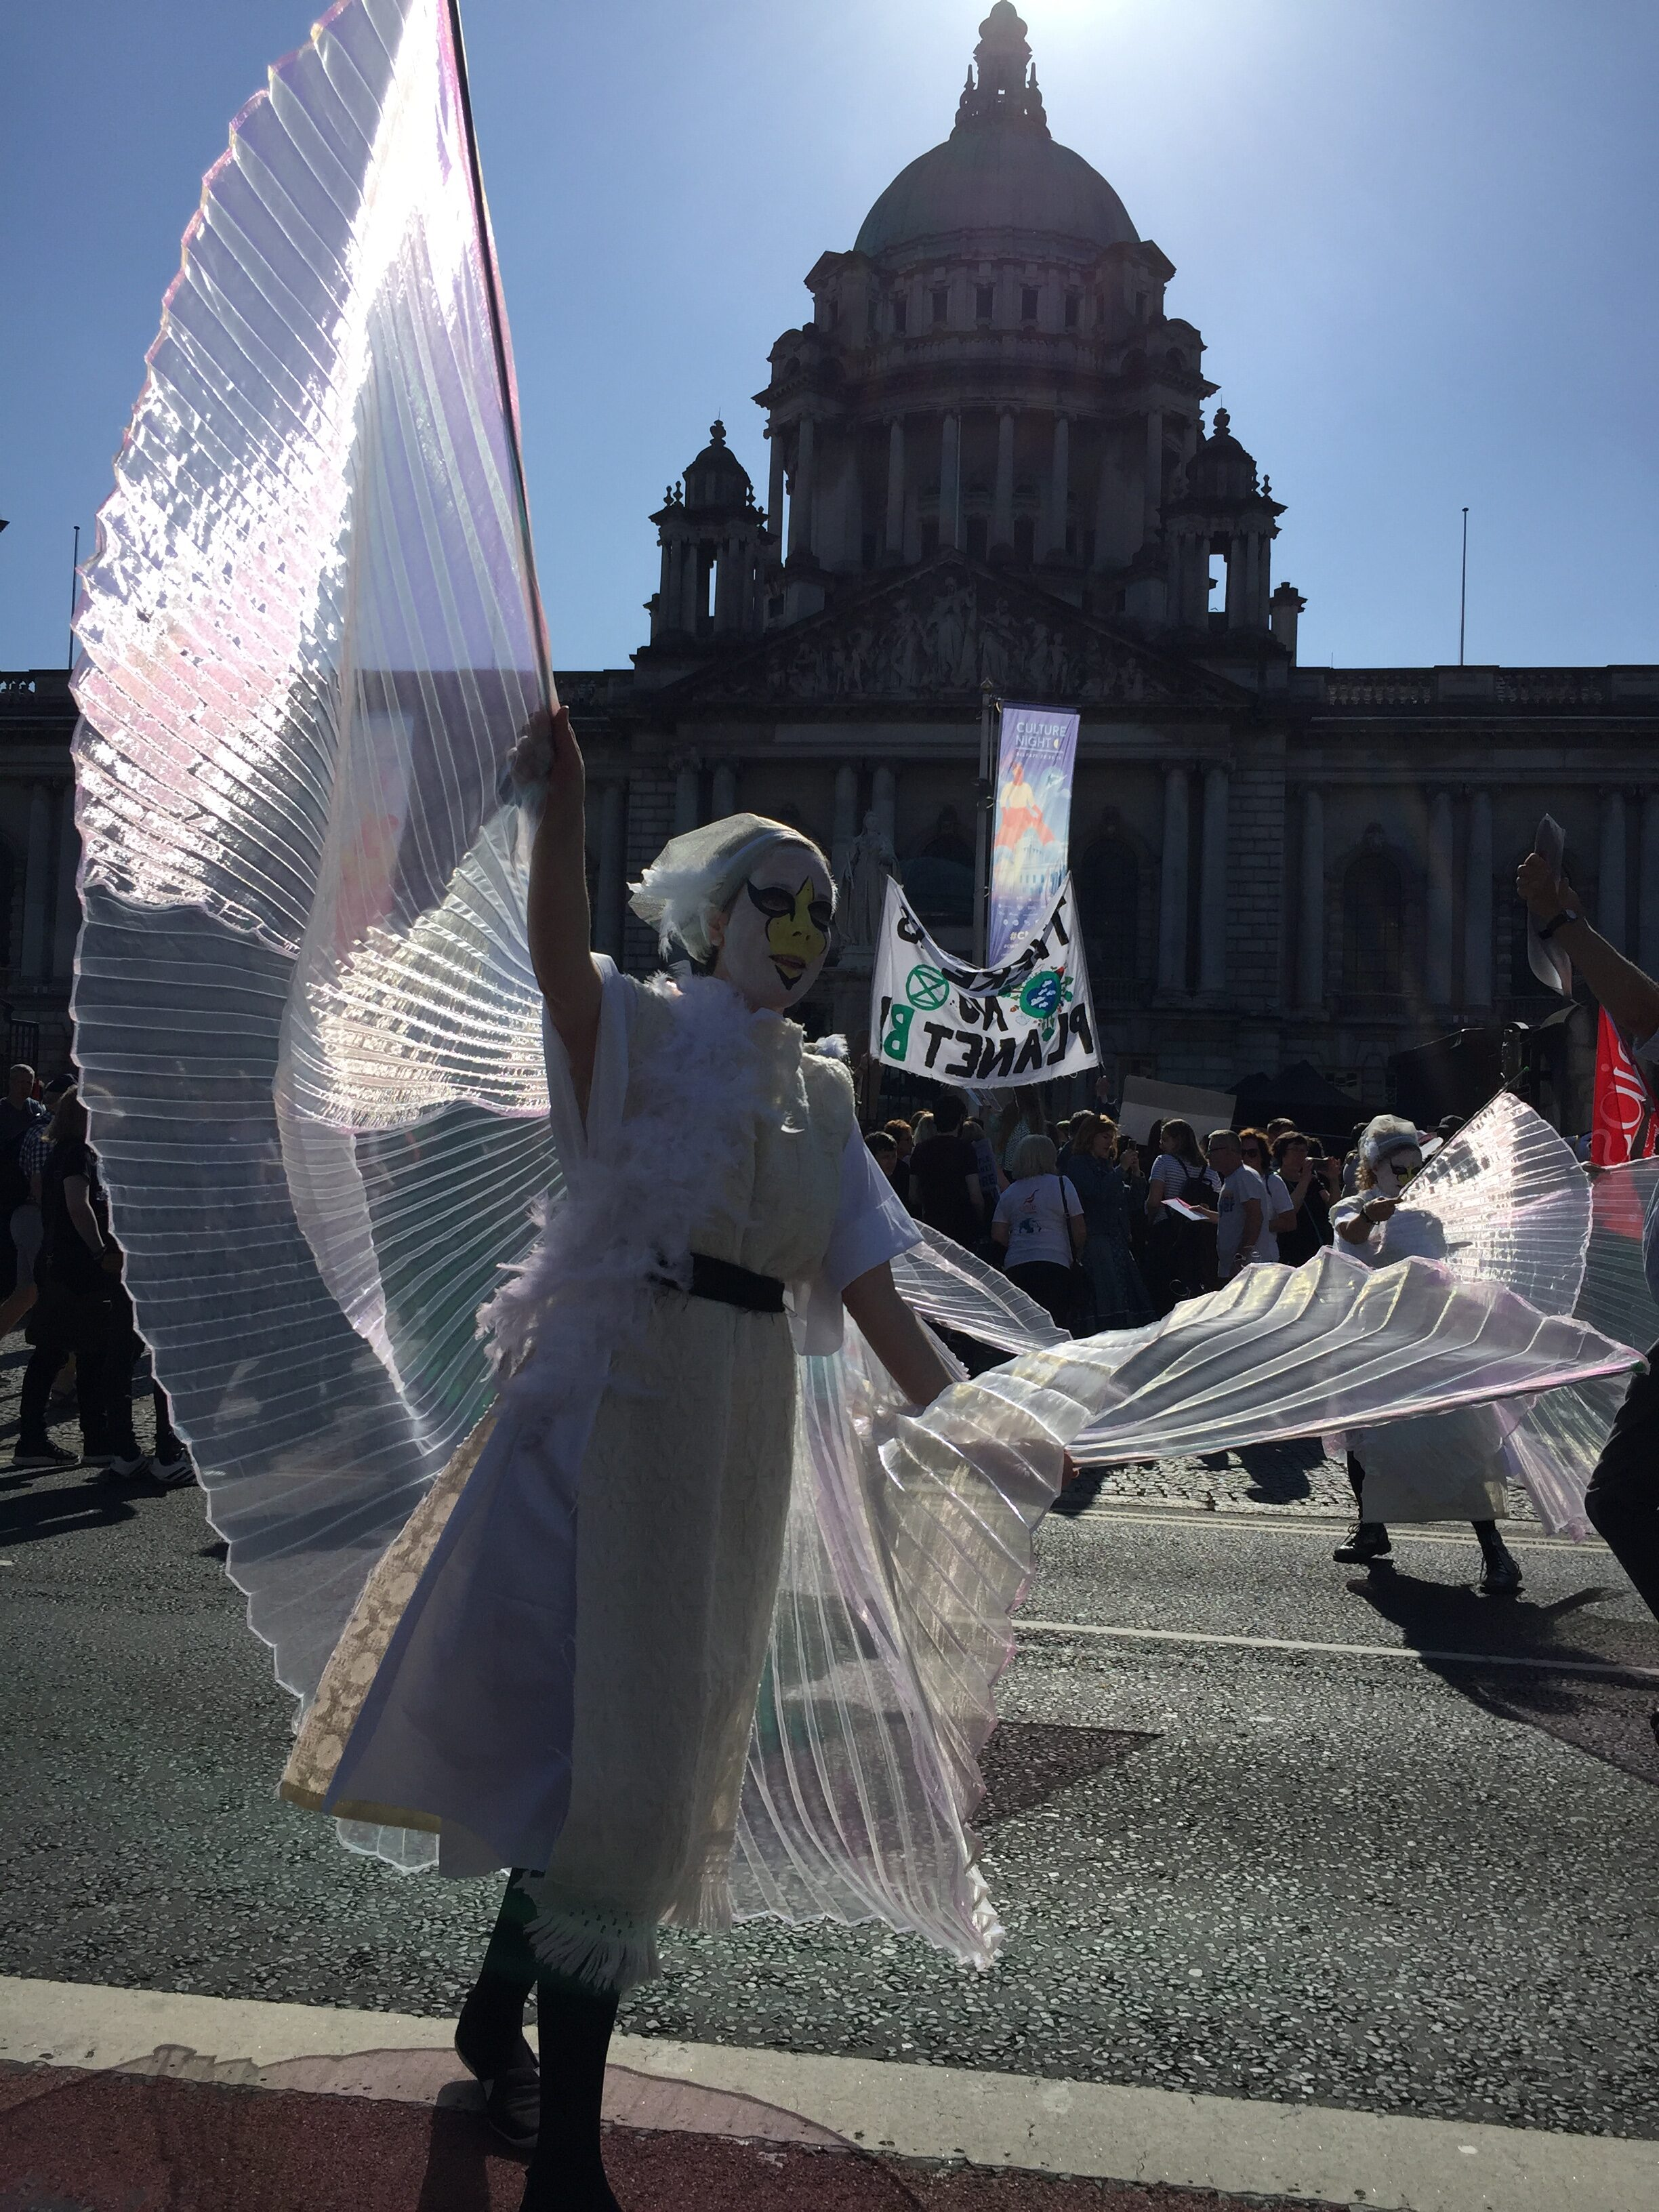 An activist dressed as a swan dances in front of City Hall